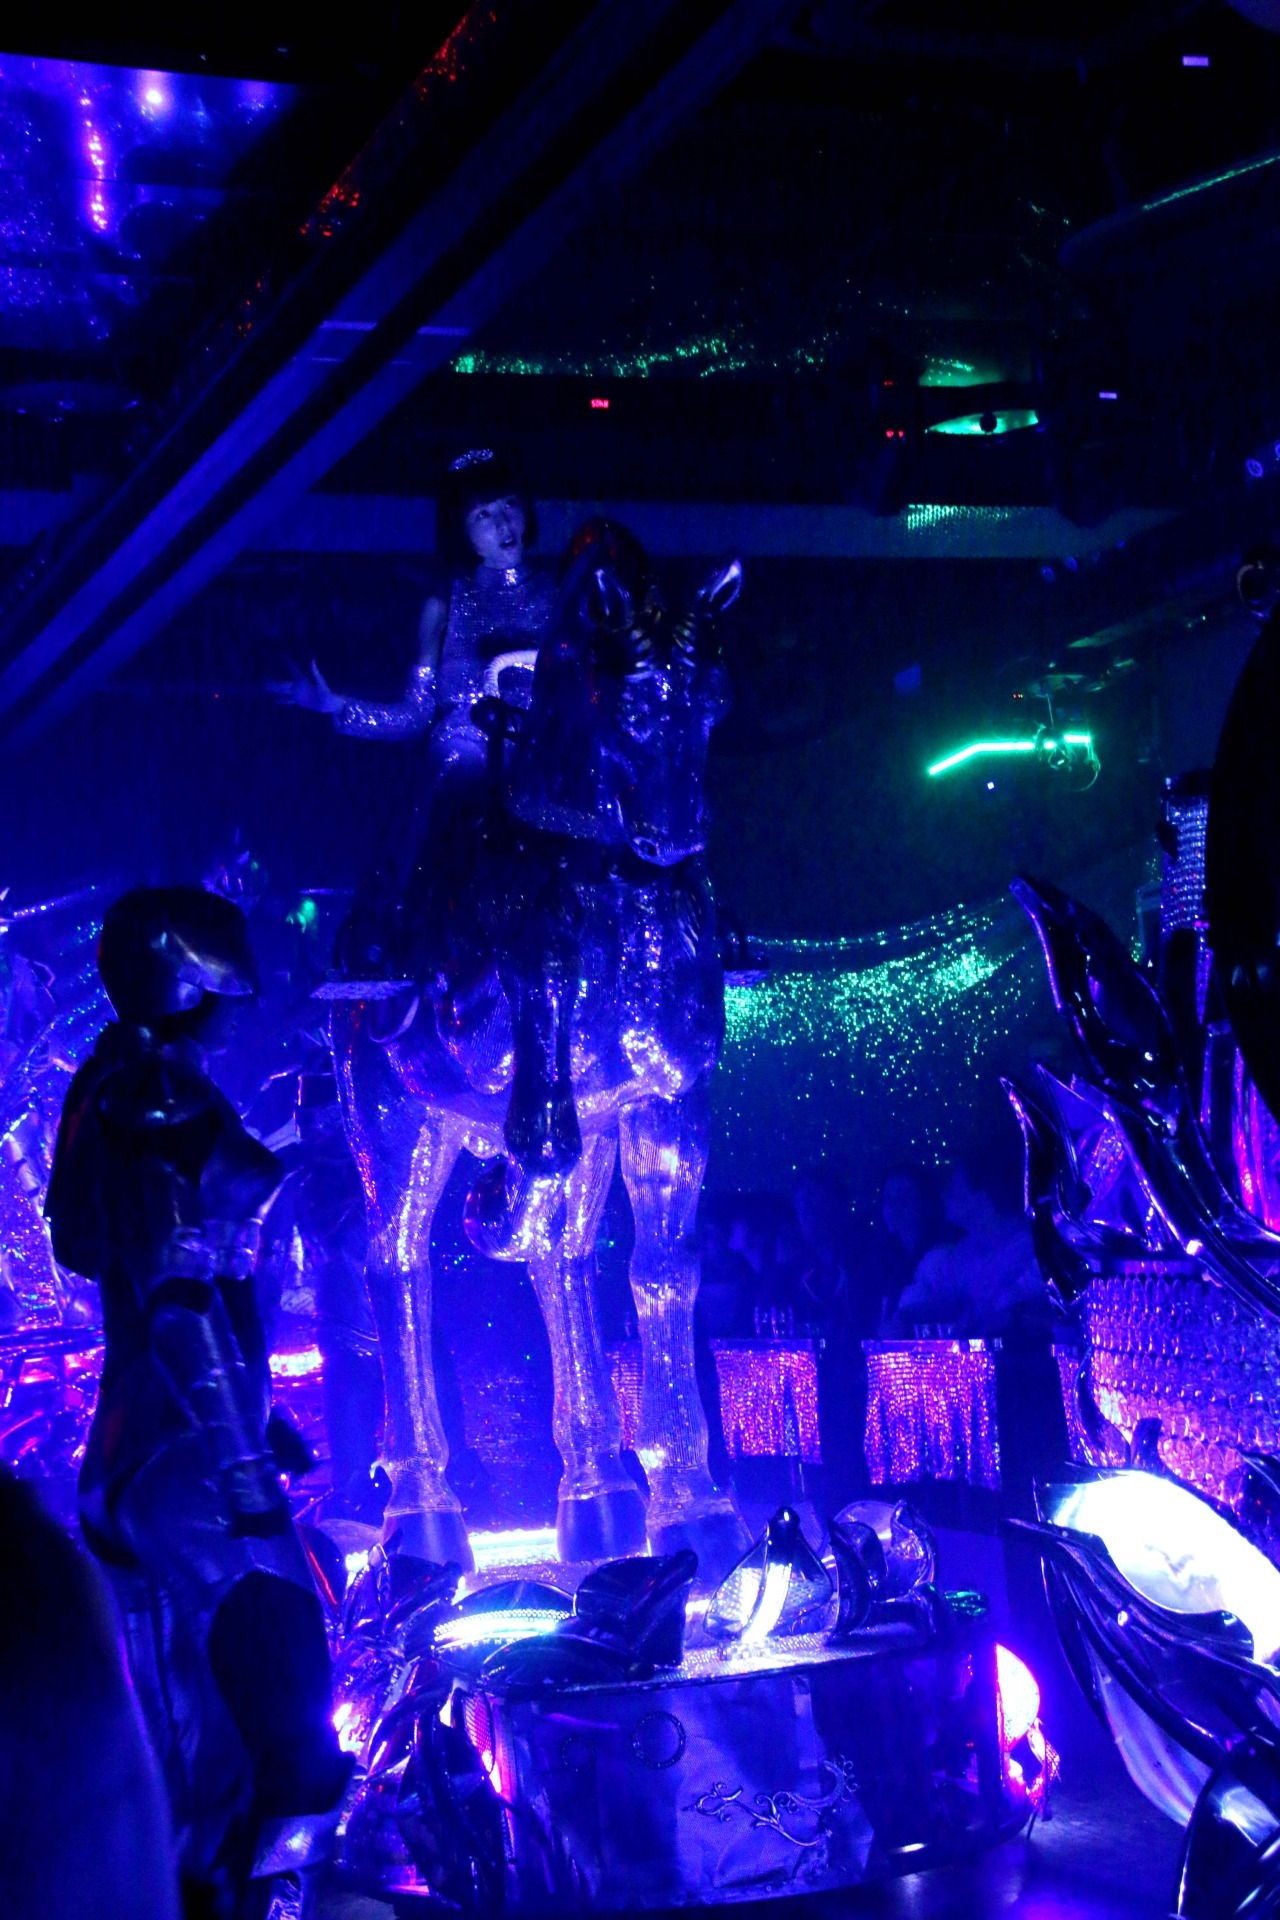 A pretty excellent version of Telephone on silver horses with robot dancers Yup